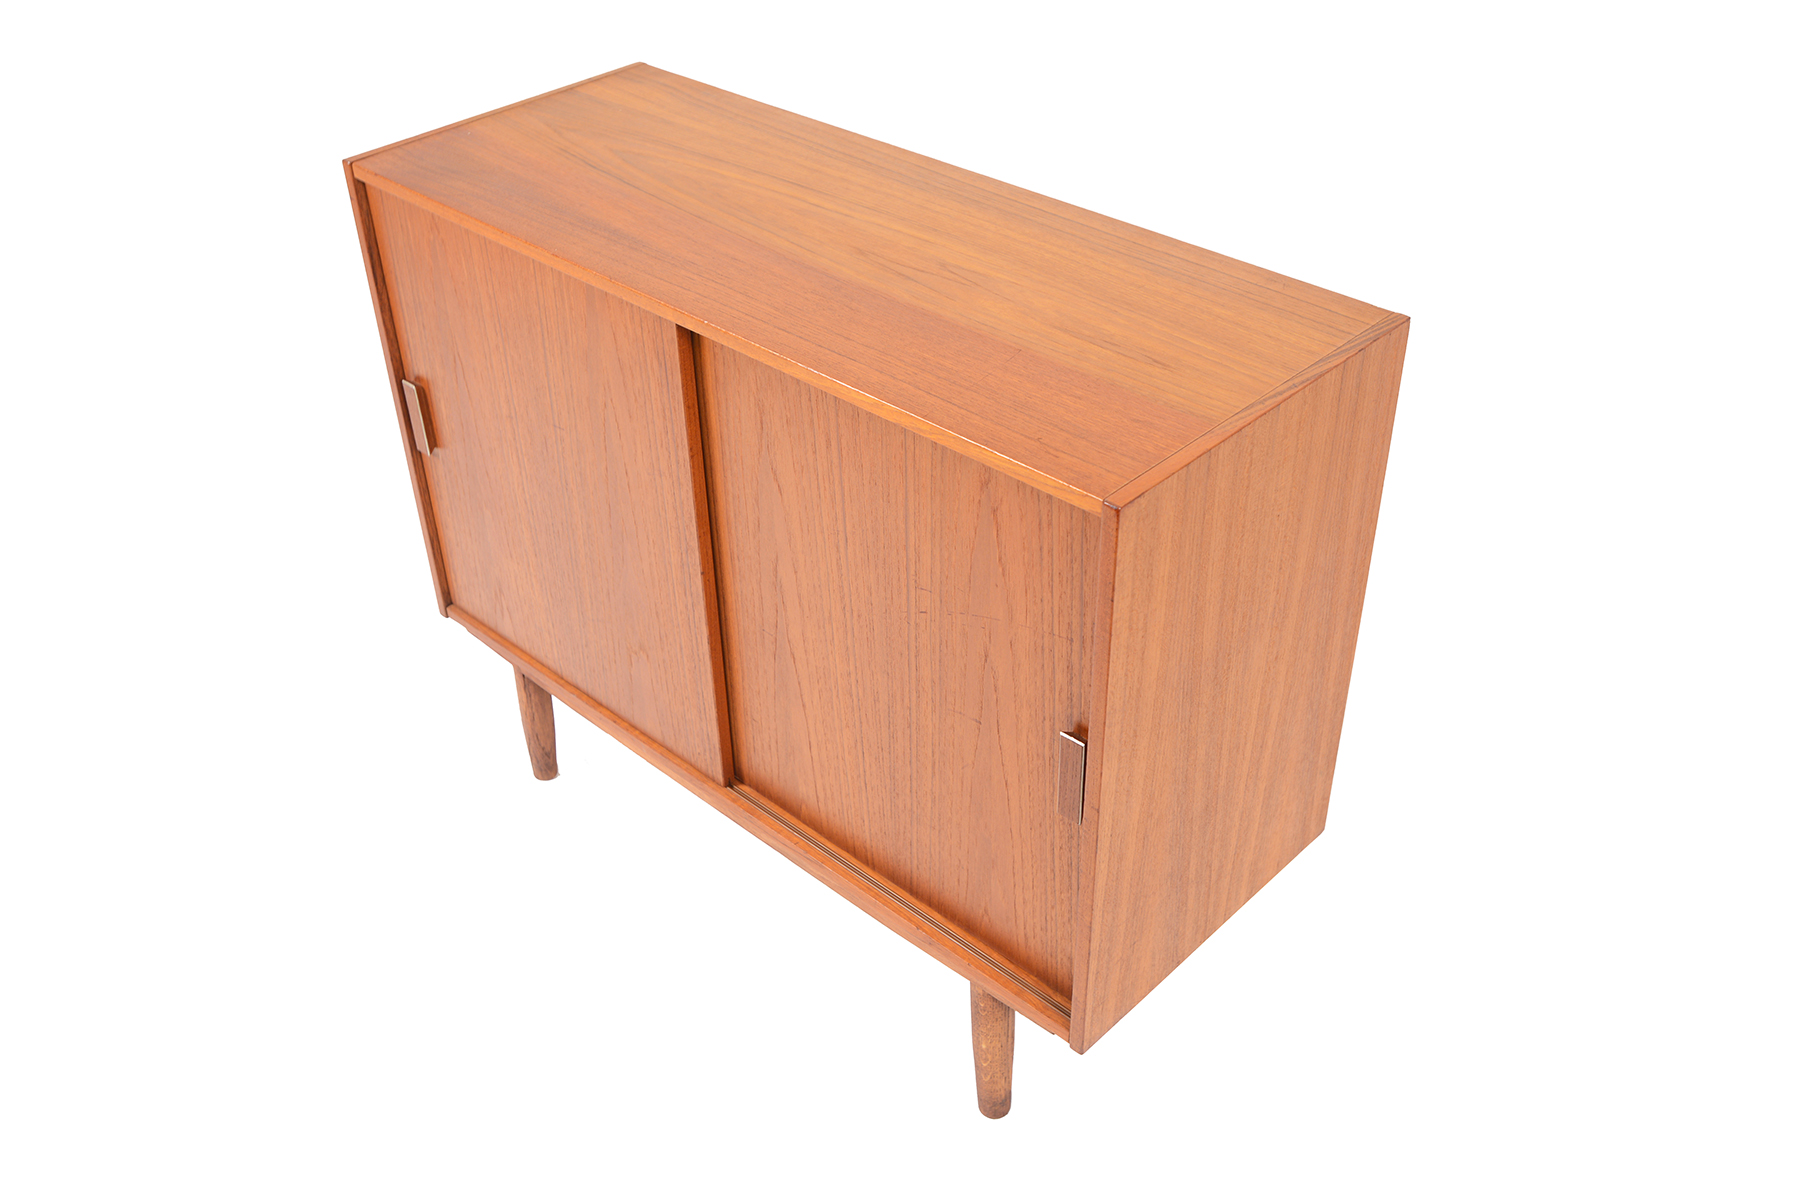 excellent mid century modern bedroom referencias san and | SMALL TEAK CREDENZA WITH ALUMINUM AND TEAK PULLS #2 • Mid ...